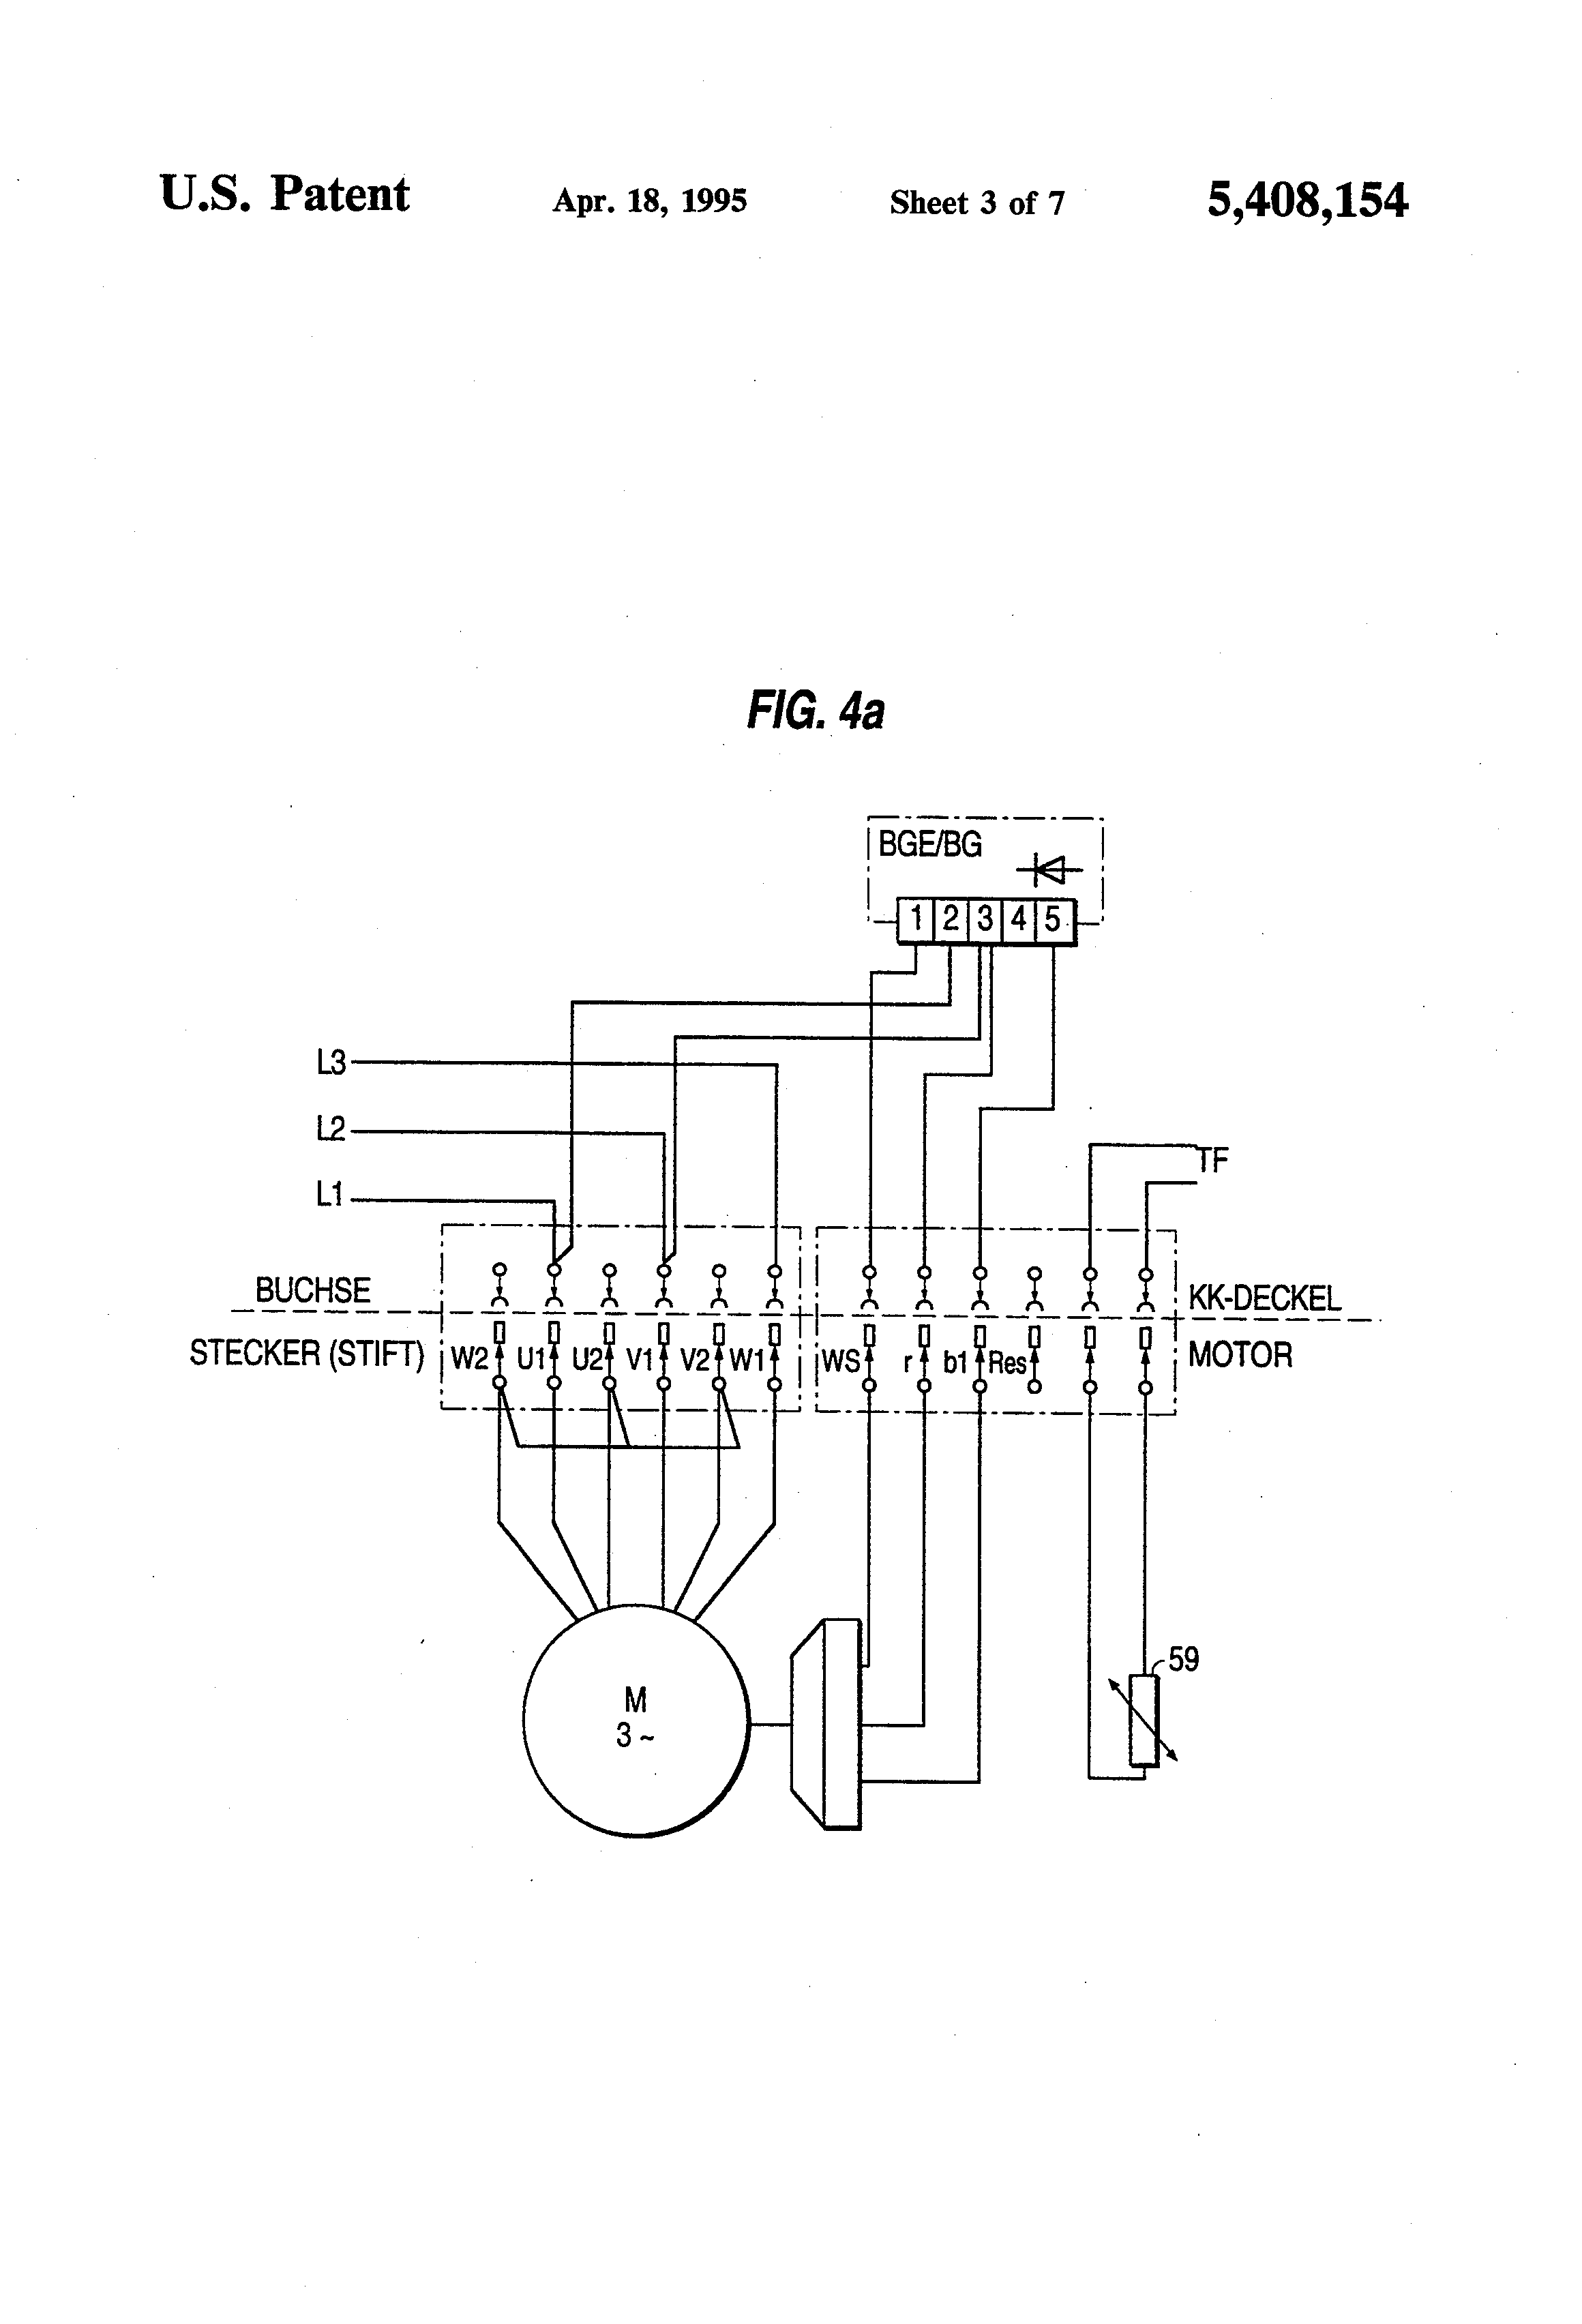 Ebm Papst Fan Wiring Diagram 28 Images Blower Us5408154 3 Patent Motor Connection Block Particularly For At